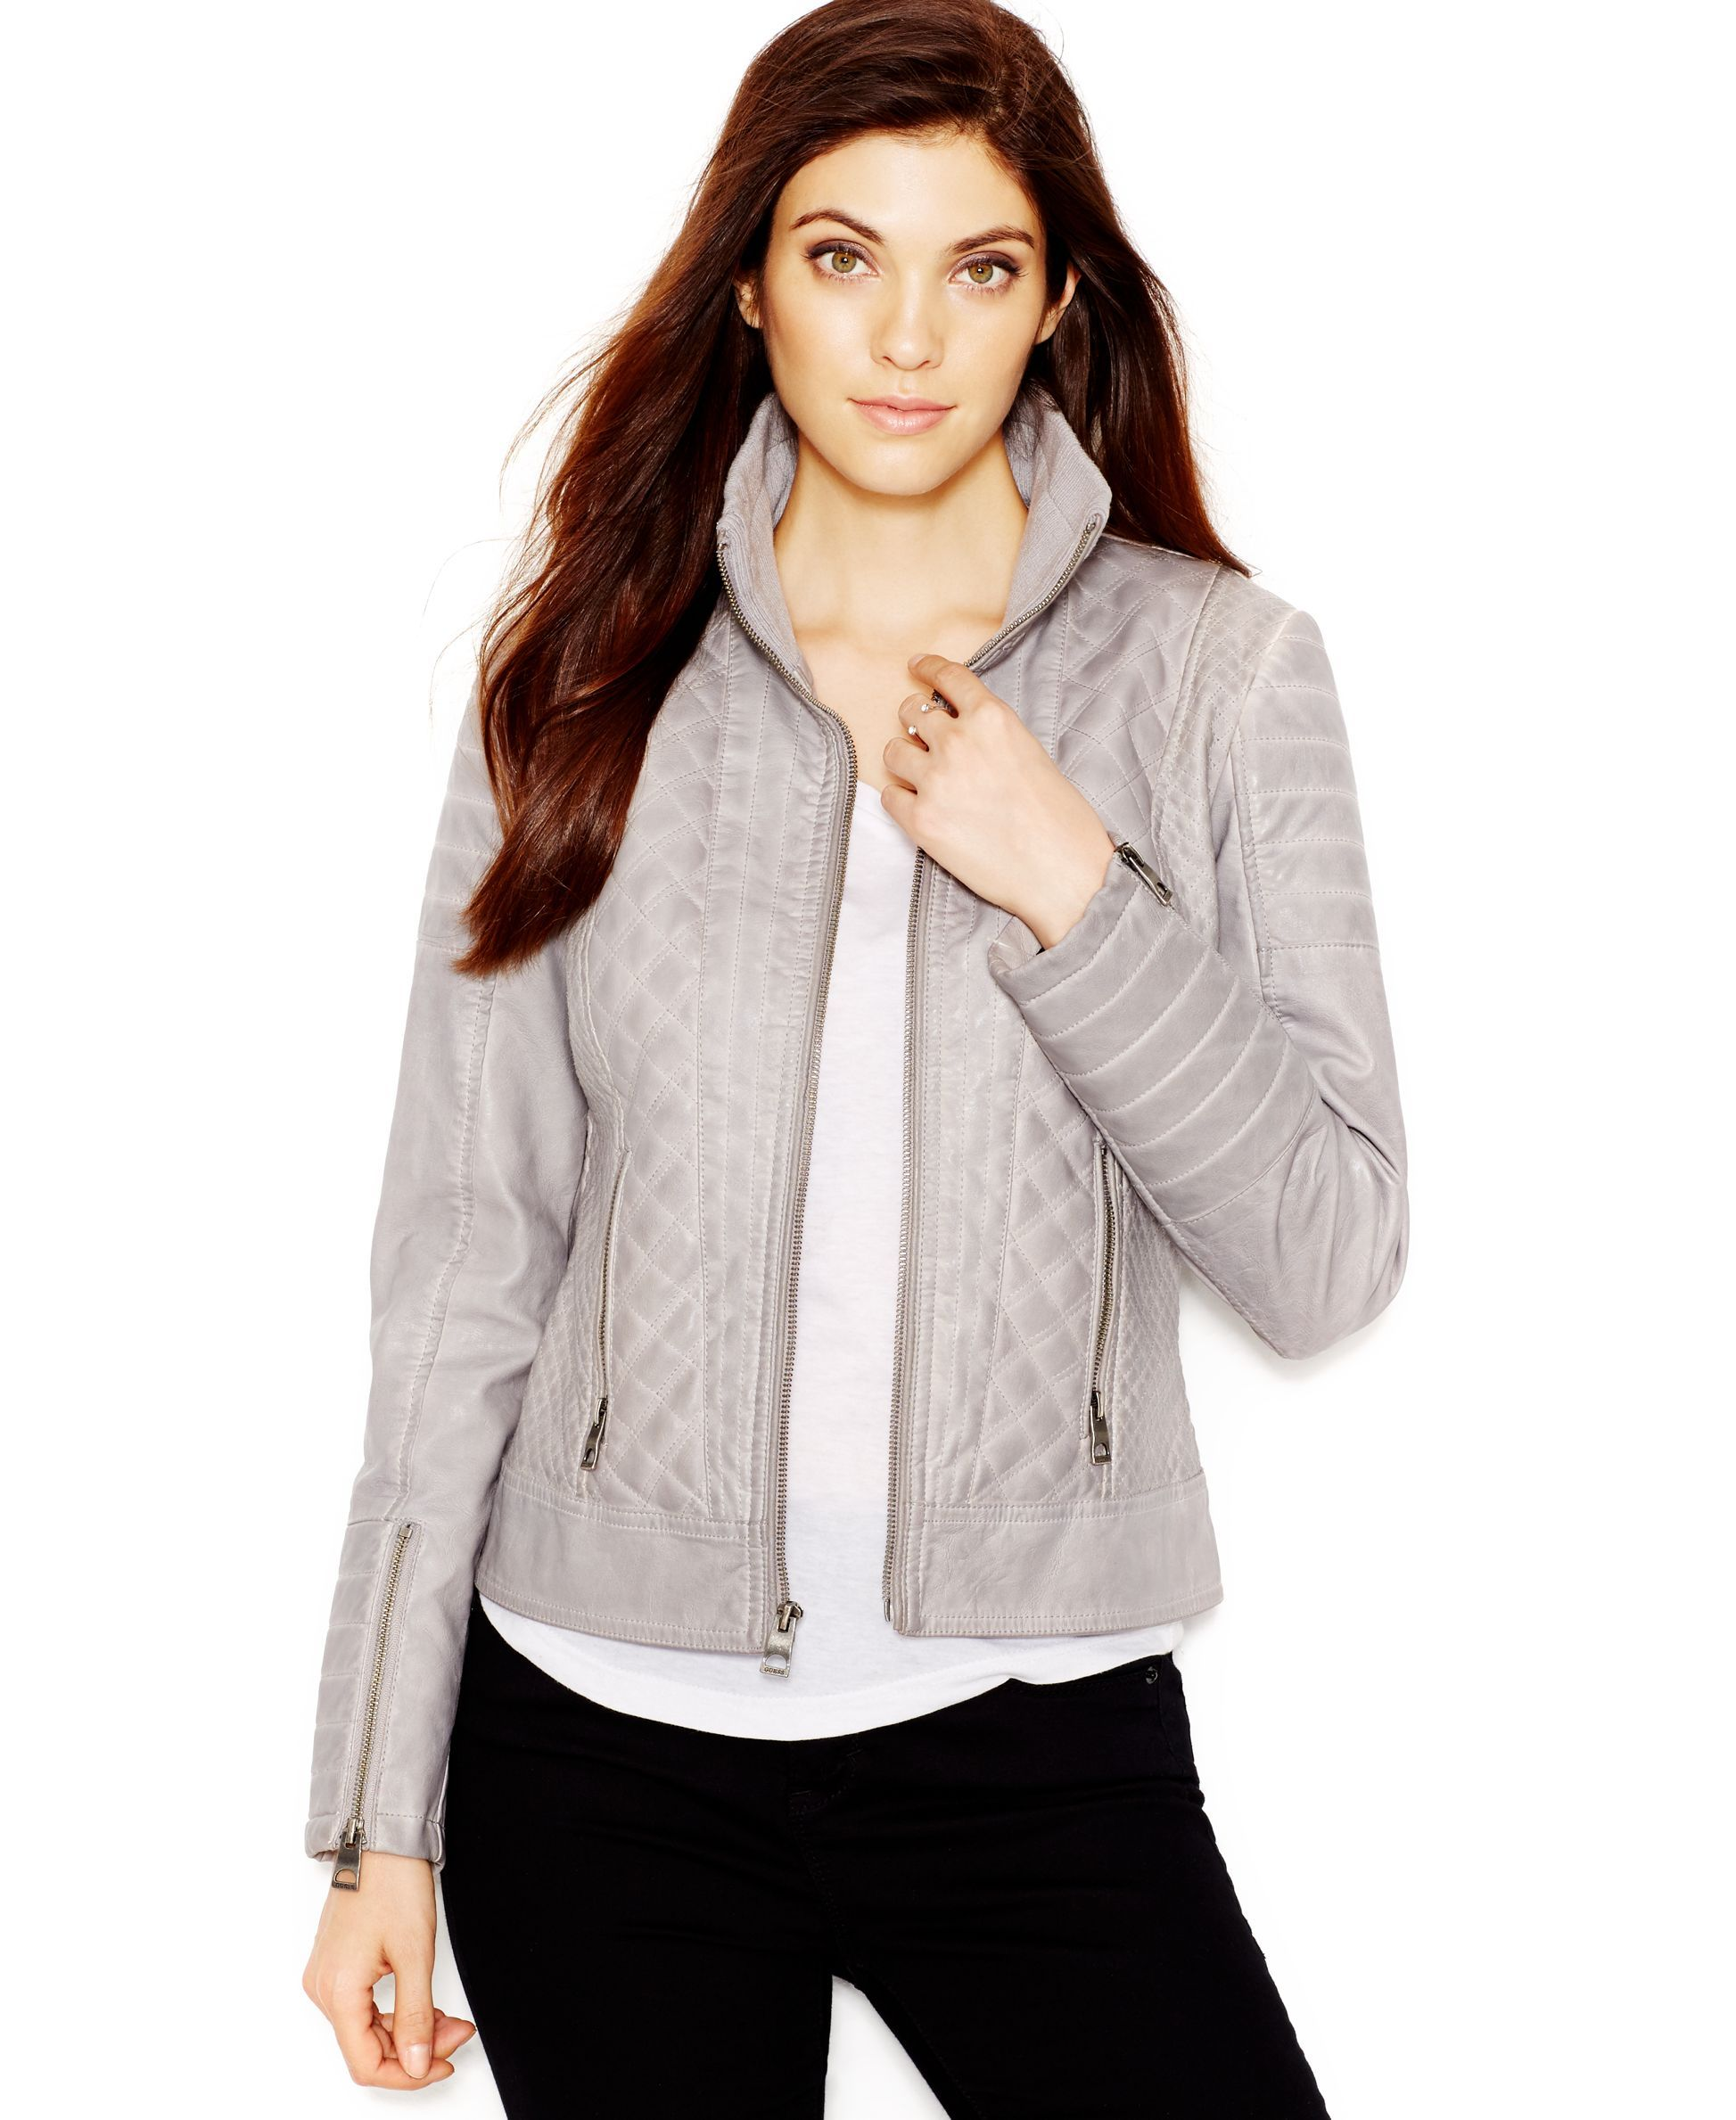 Guess Quilted Faux Leather Jacket Jackets Blazers Women Macy S Faux Leather Jackets Blazer Jackets For Women Clothes Design [ 2378 x 1947 Pixel ]